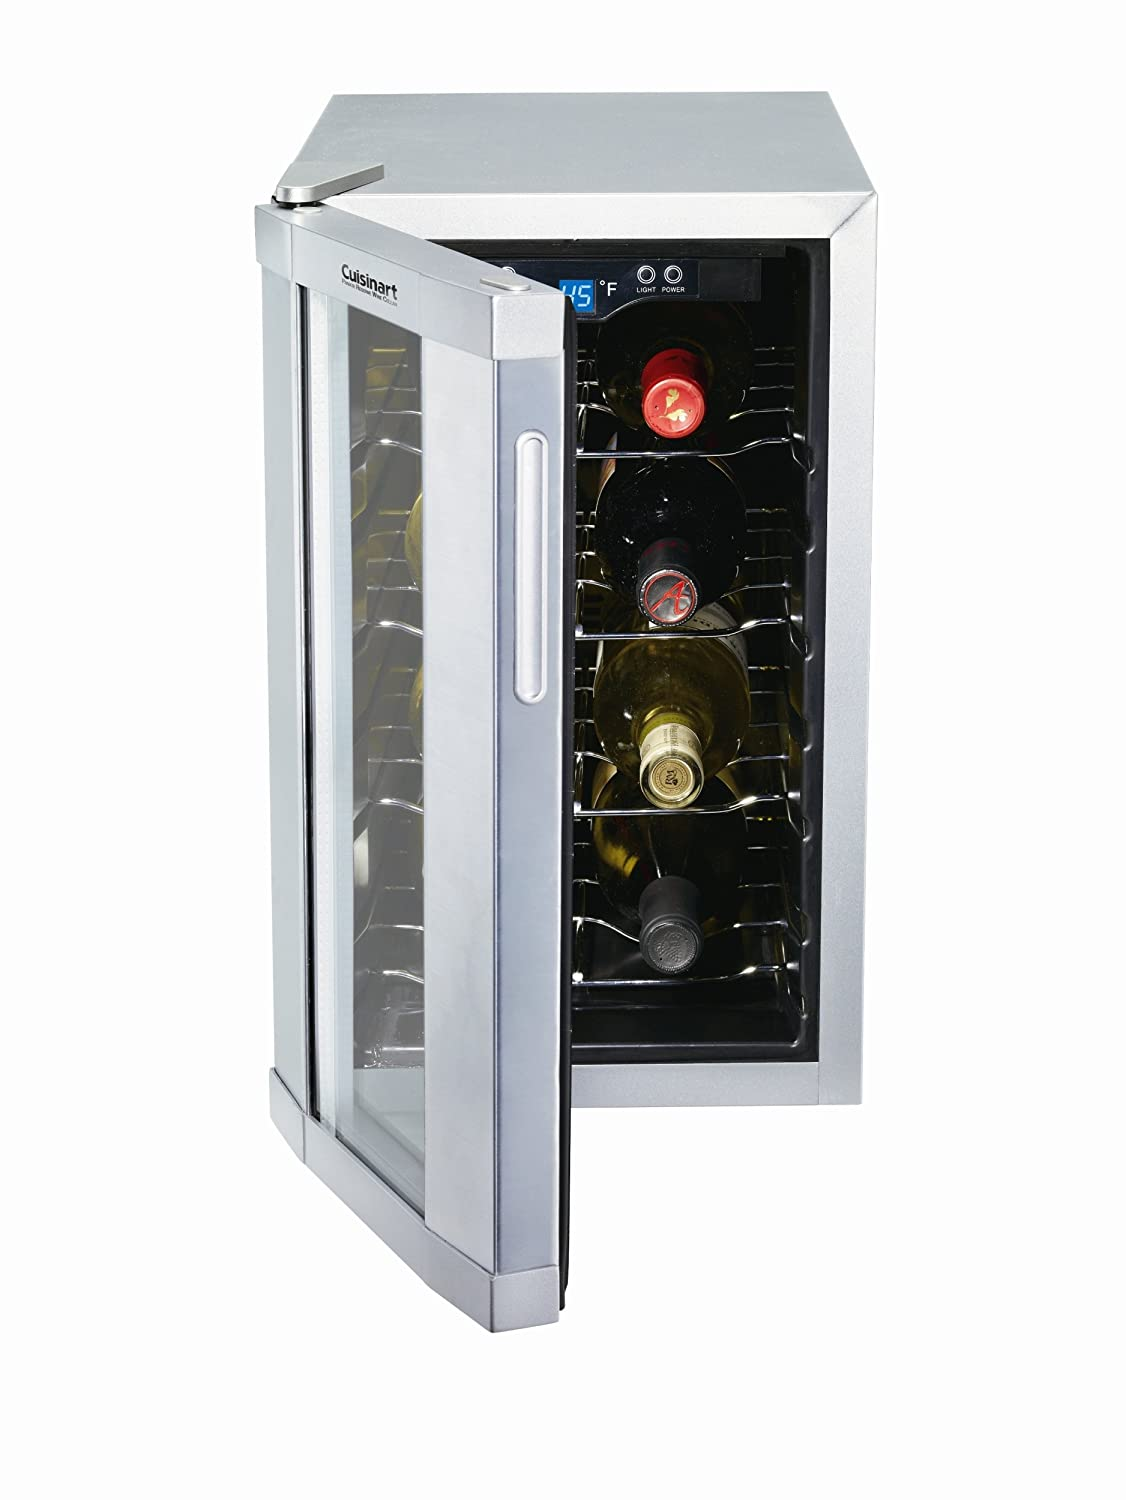 Amazon.com Cuisinart CWC-800 8-Bottle Private Reserve Wine Cellar Stainless Finish Appliances  sc 1 st  Amazon.com & Amazon.com: Cuisinart CWC-800 8-Bottle Private Reserve Wine Cellar ...